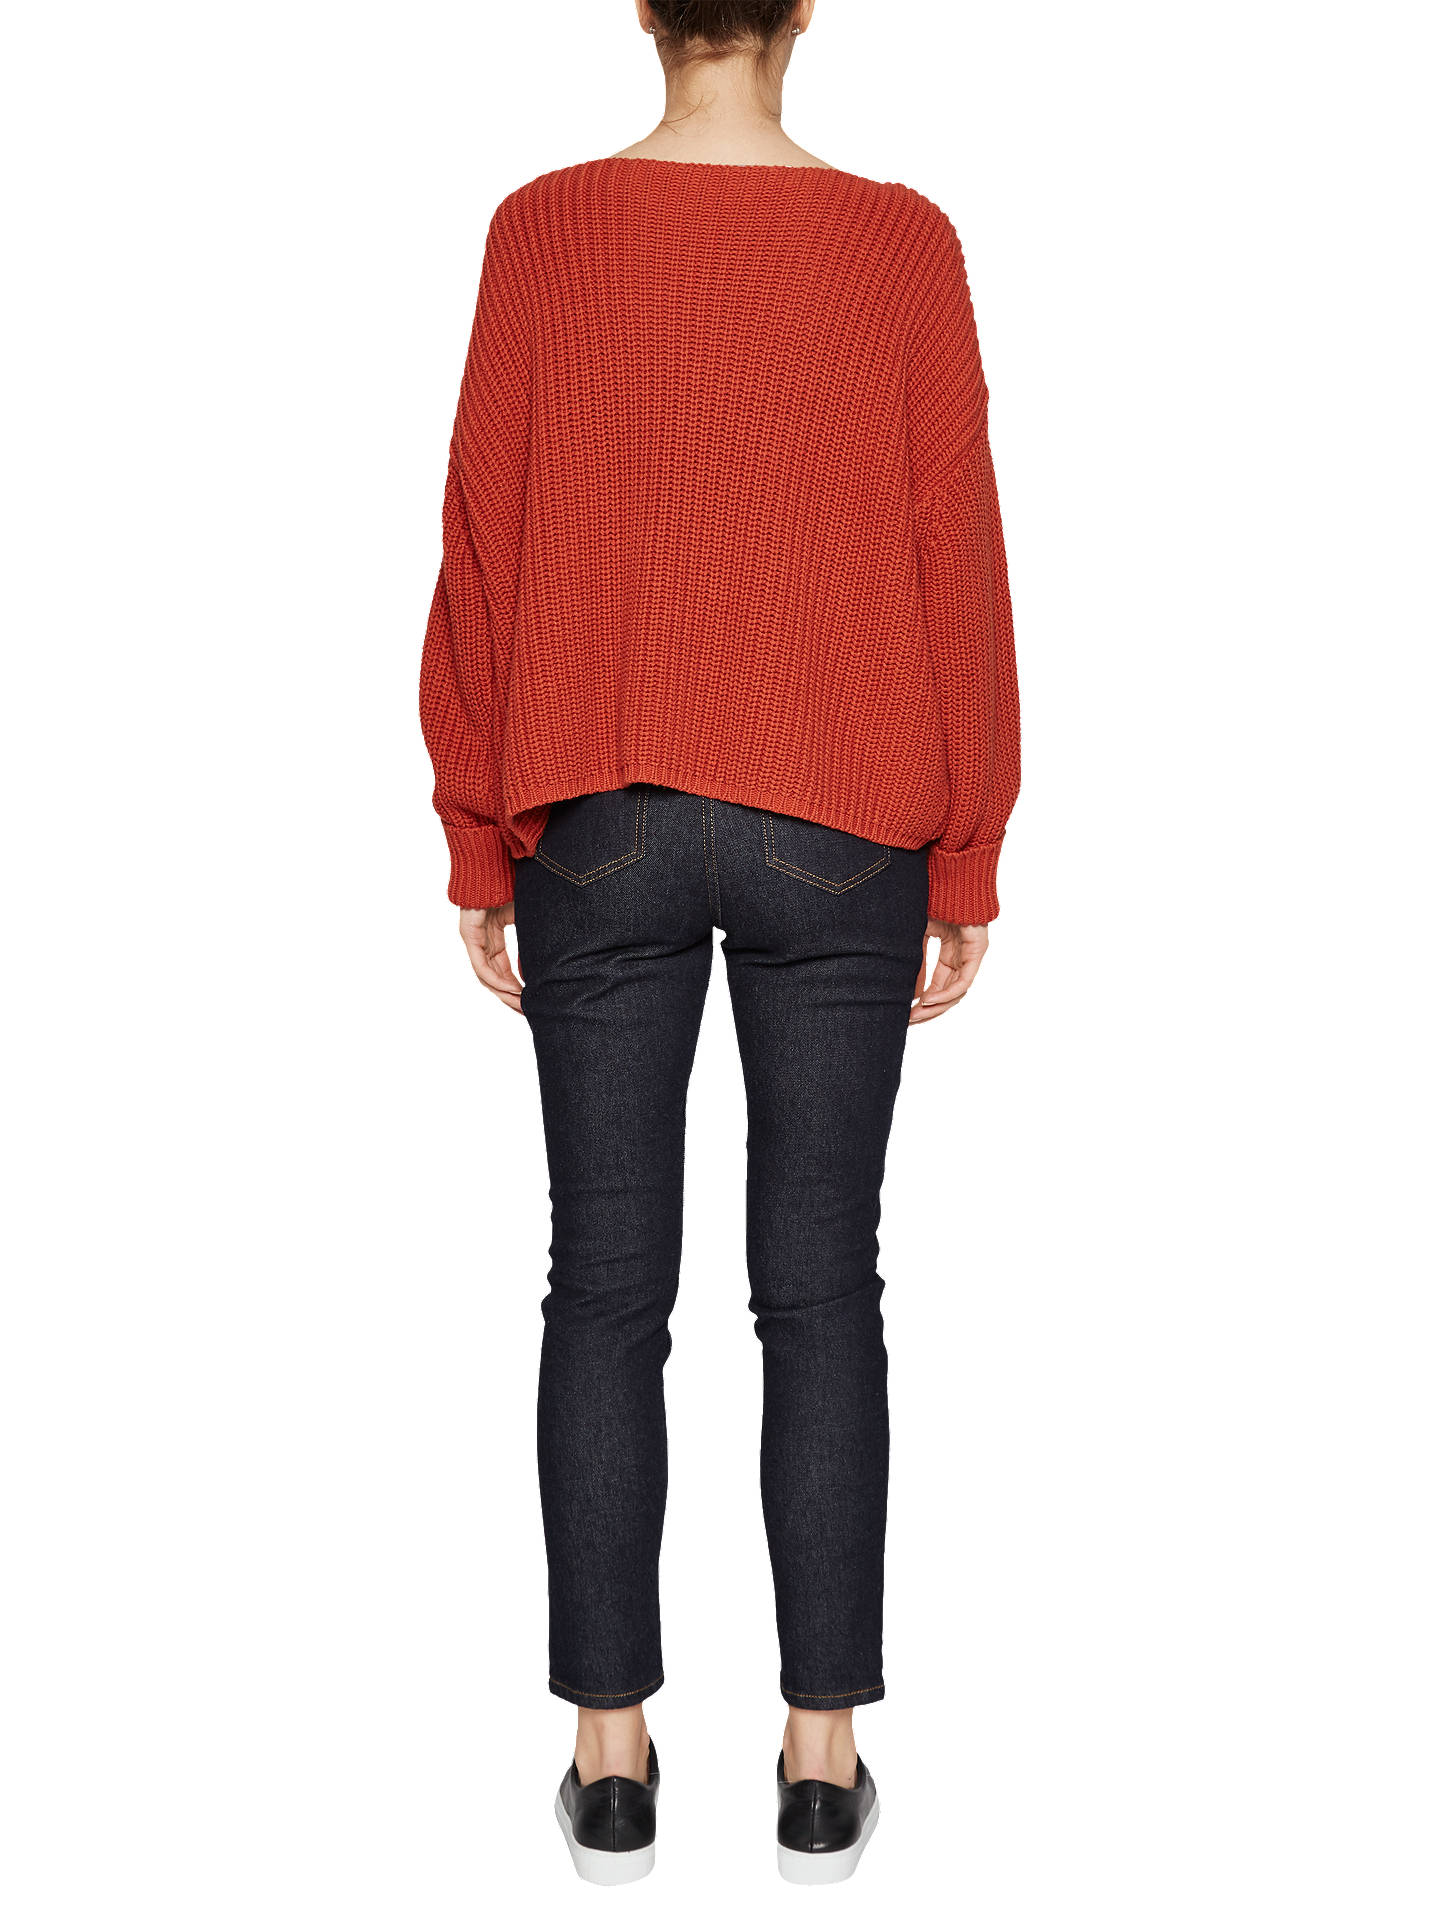 Buy French Connection Millie Mozart Jumper, Copper Coin, L Online at johnlewis.com